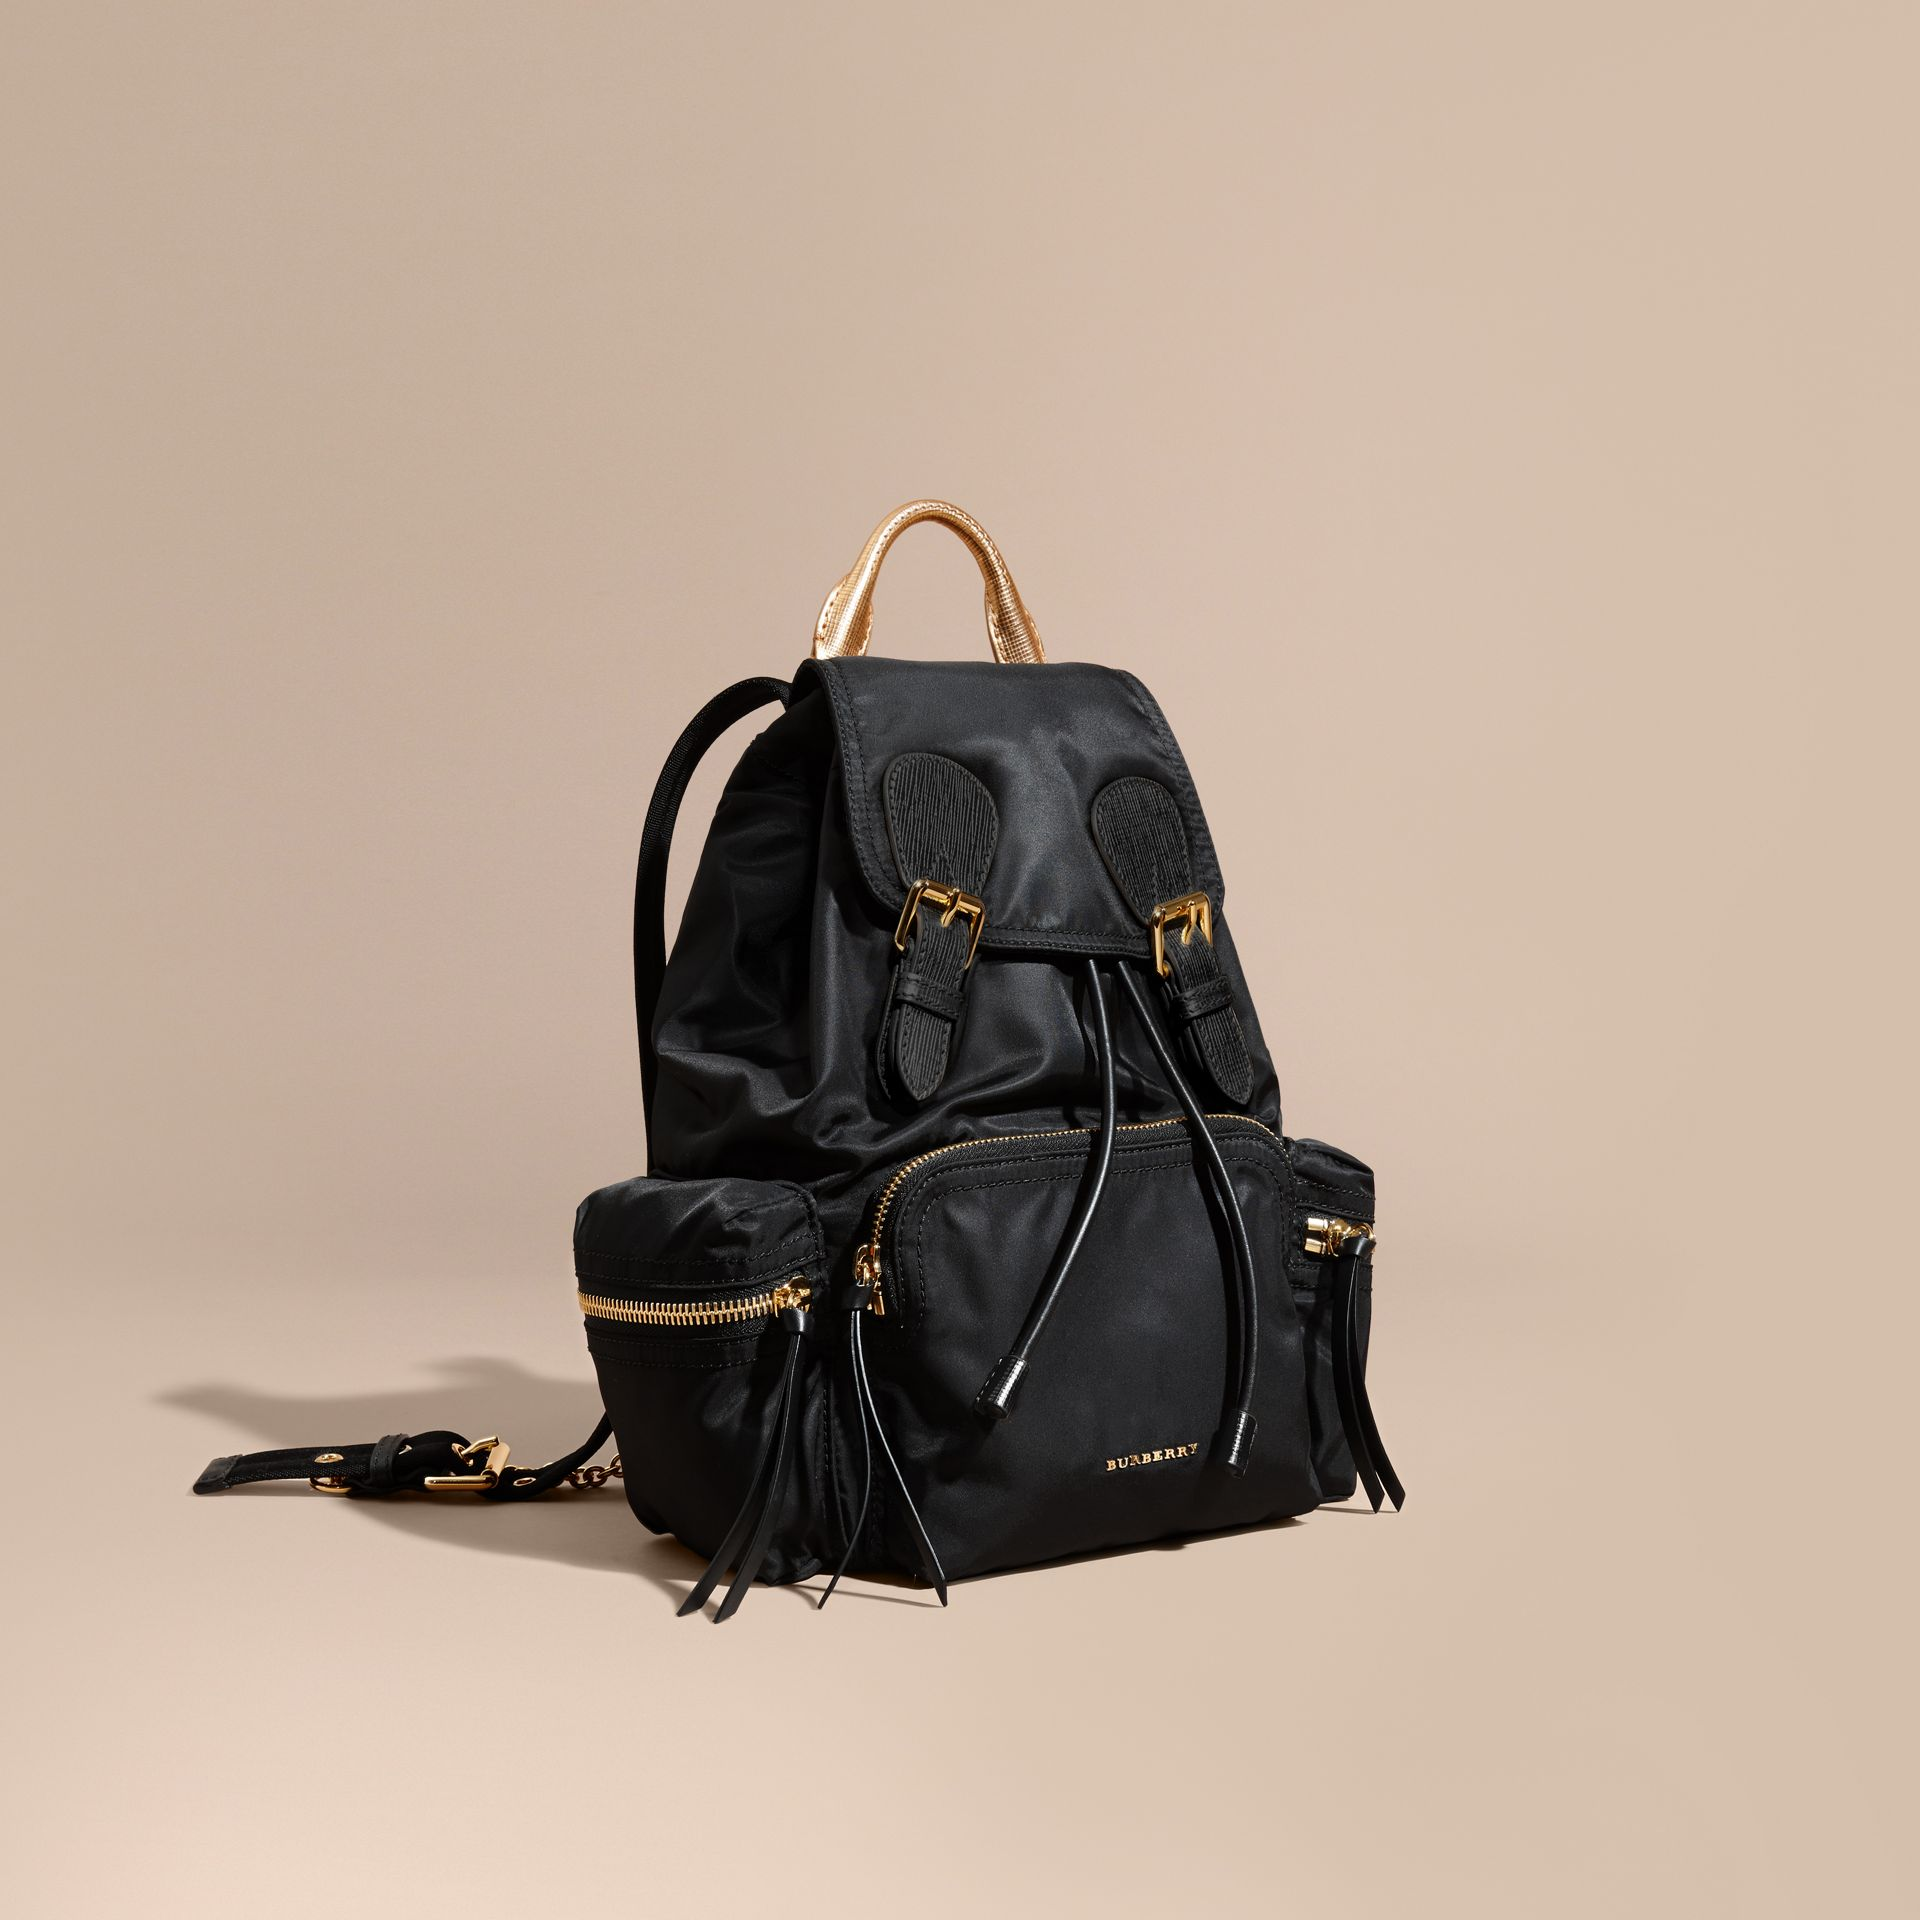 Black/gold The Medium Rucksack in Two-tone Nylon and Leather Black/gold - gallery image 1